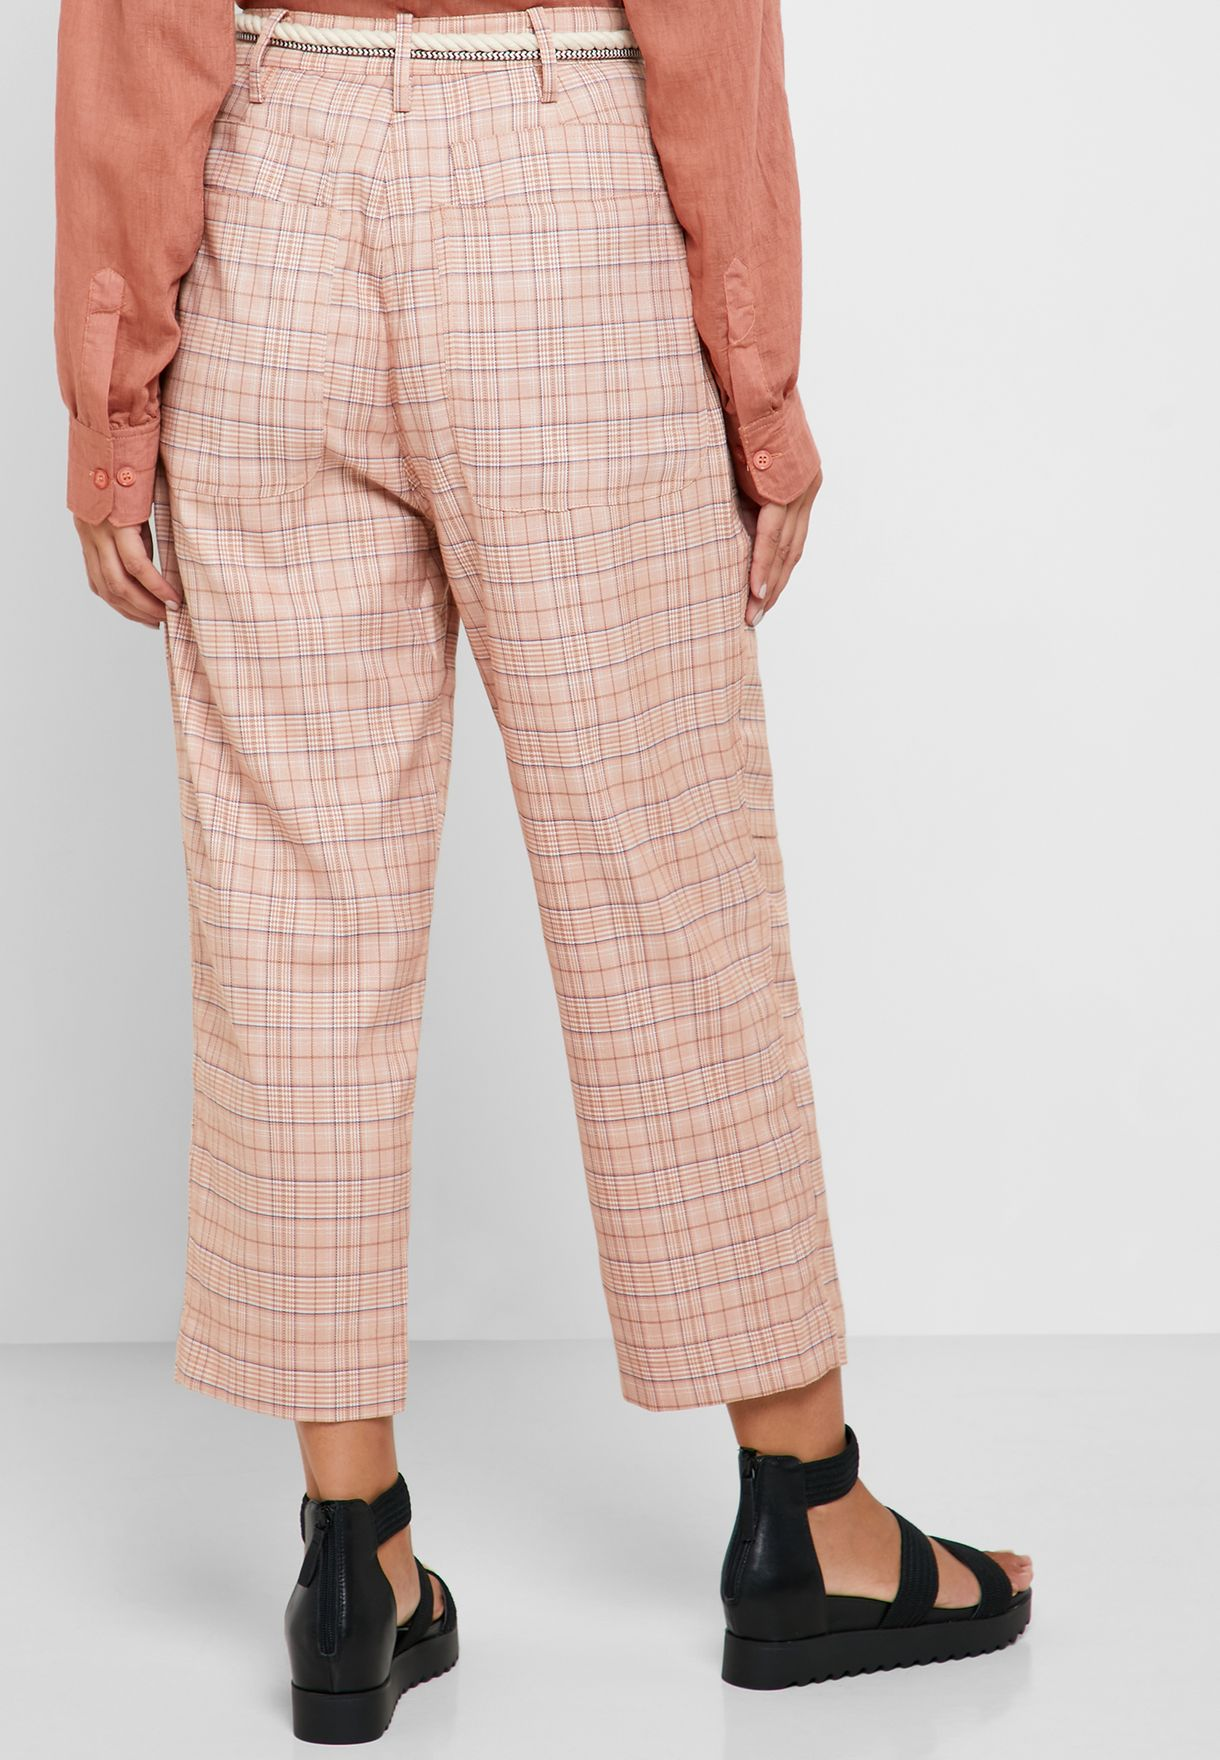 Ankle Grazer Checked Cargo pants